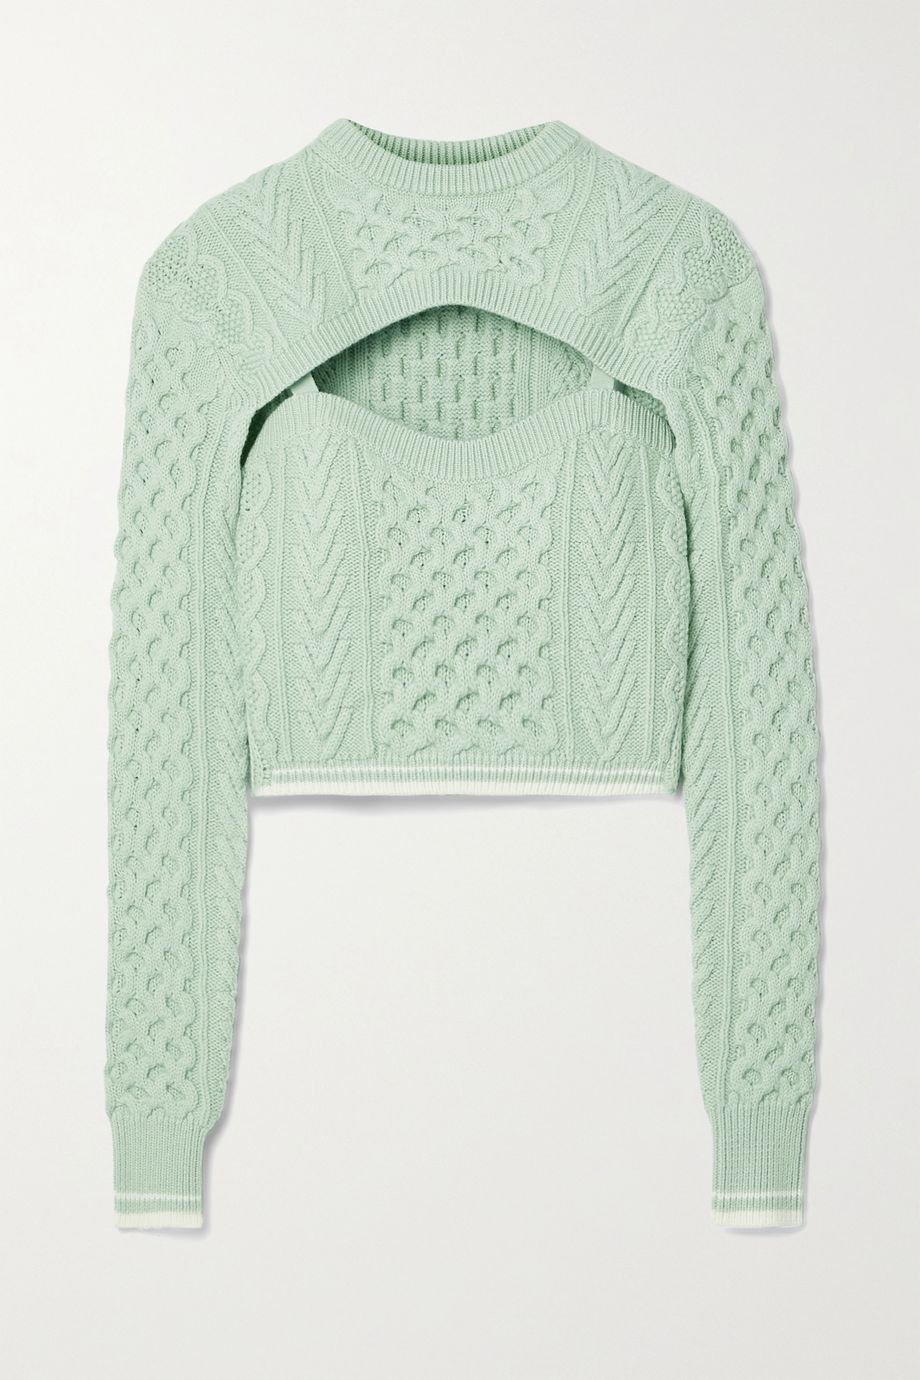 Rosie Assoulin Thousand in One Ways convertible cropped cable-knit wool and cotton-blend sweater